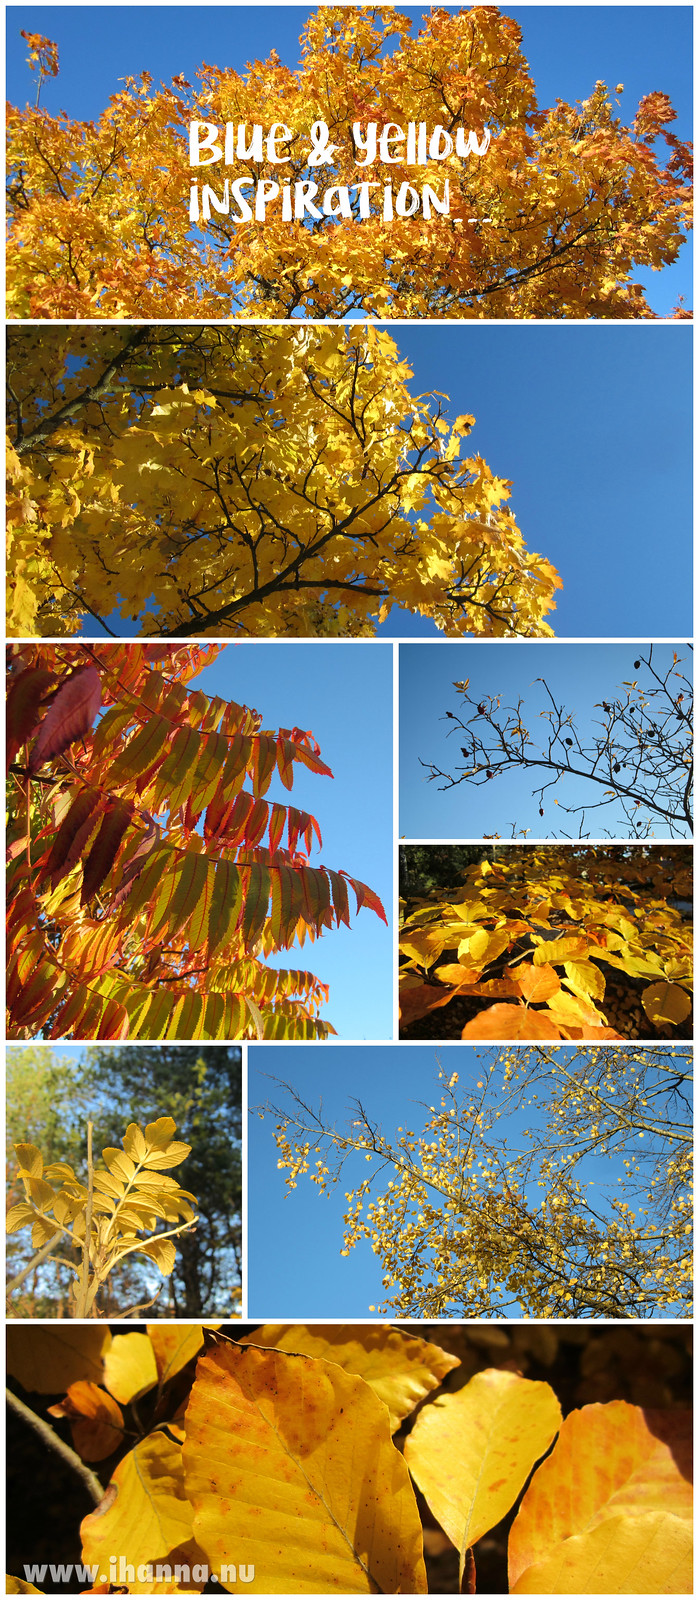 Sweden in fall colors photo copyright Hanna Andersson @ihanna #sweden